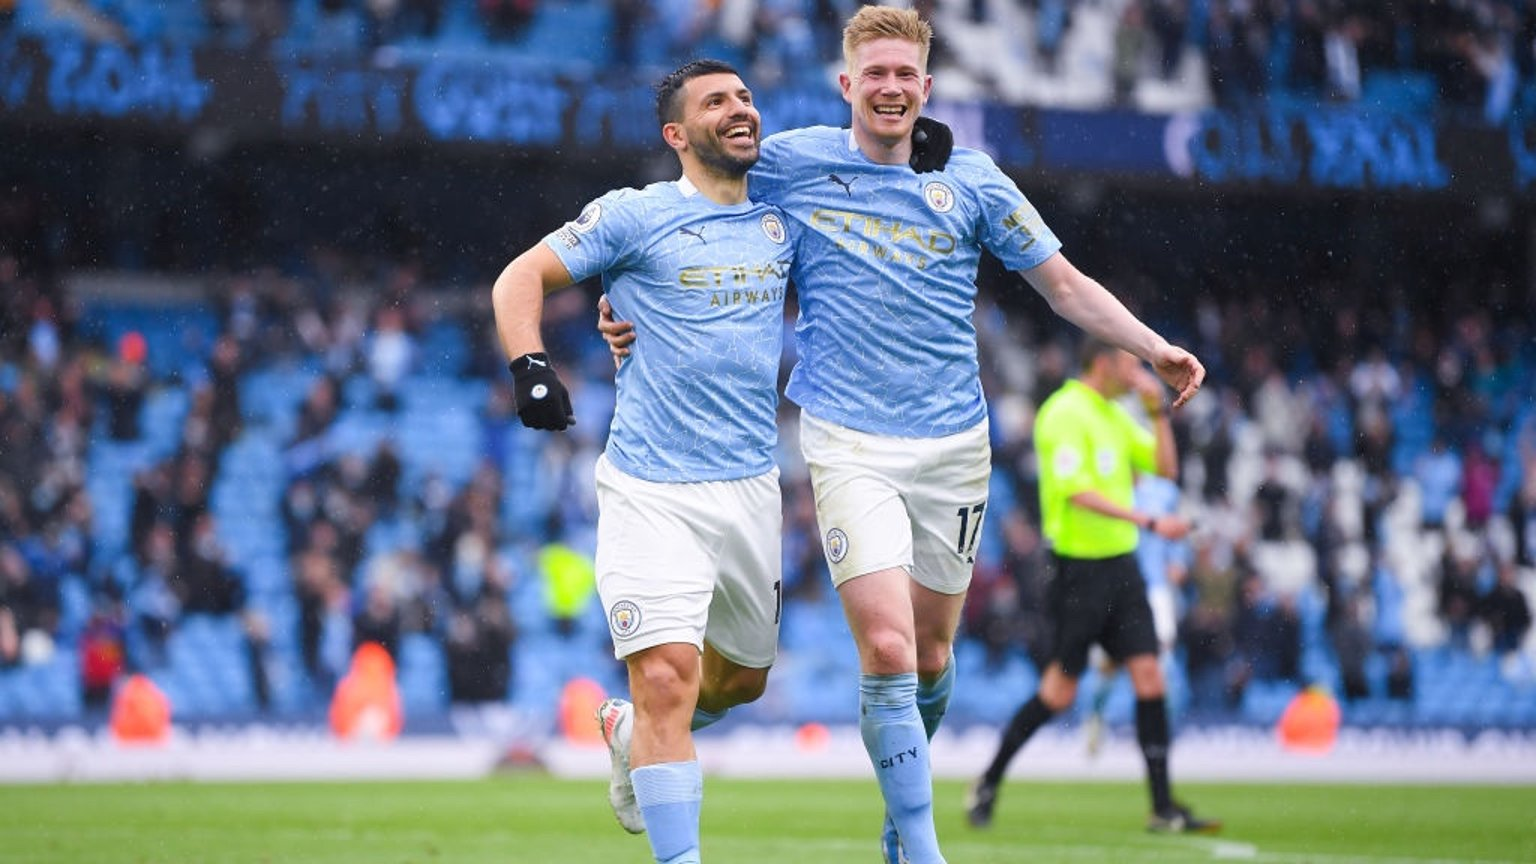 WRITTEN IN THE STARS: The all-time leading City scorer celebrates adding another to his tally!